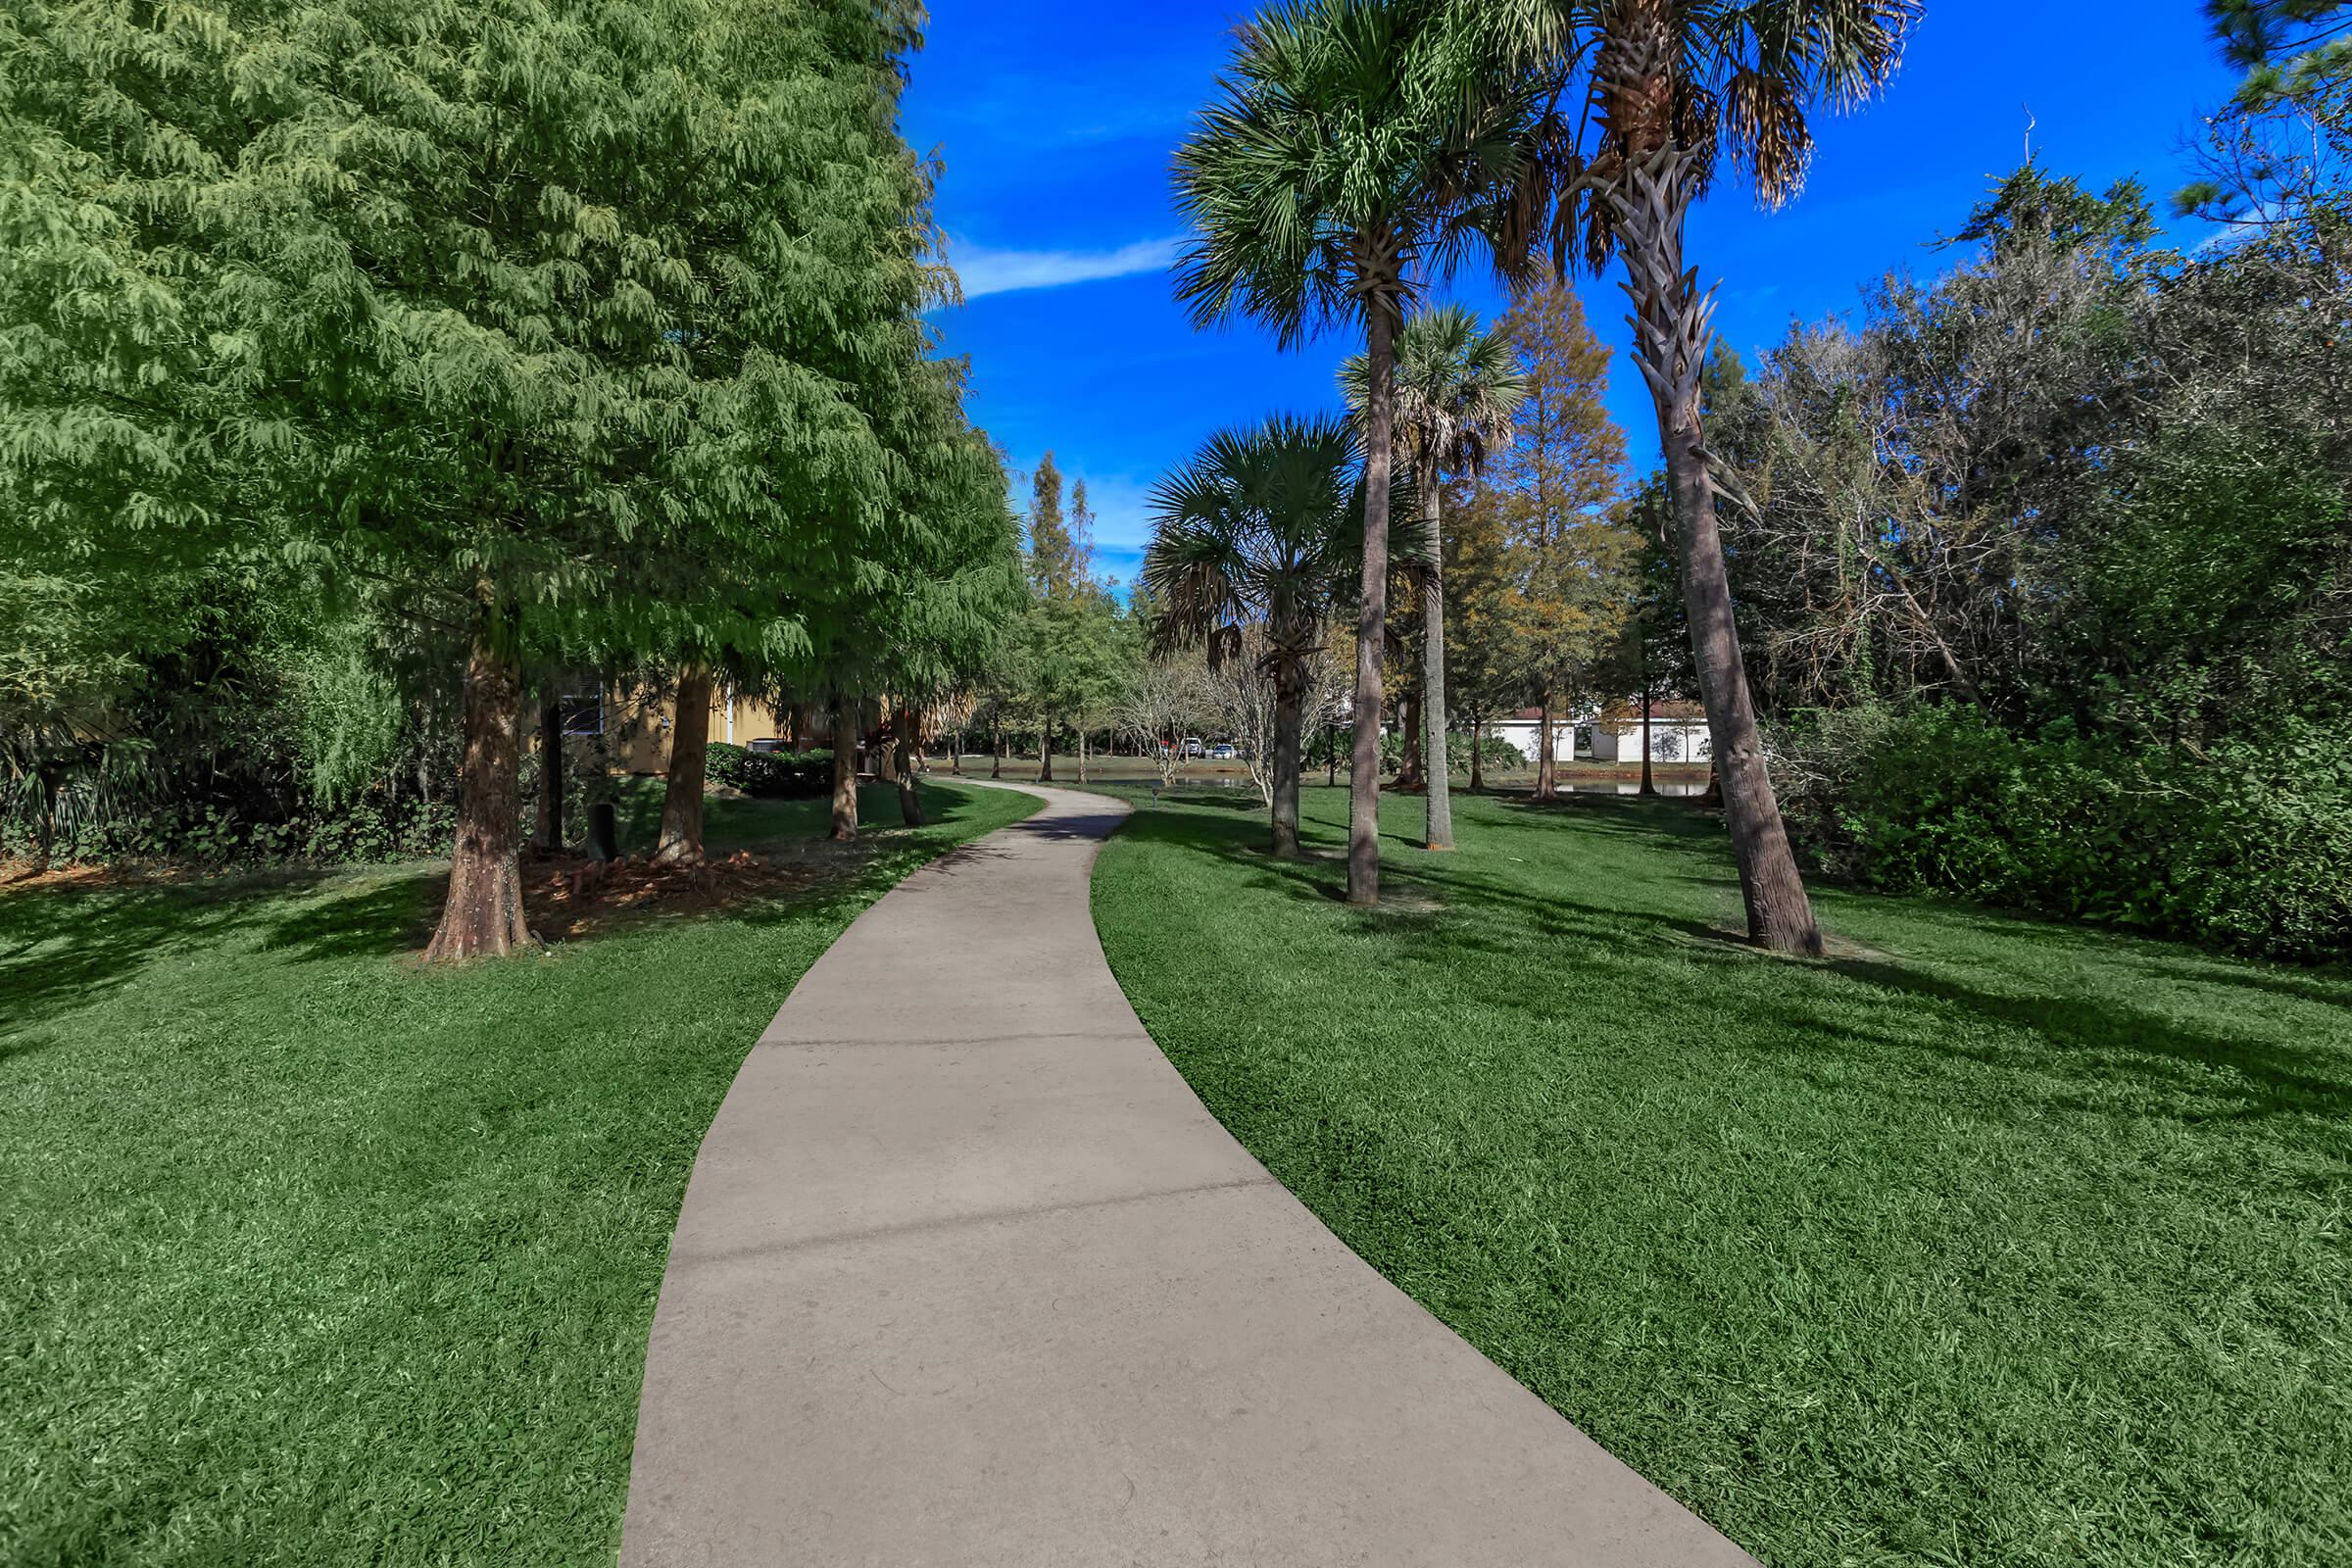 a path with grass and trees